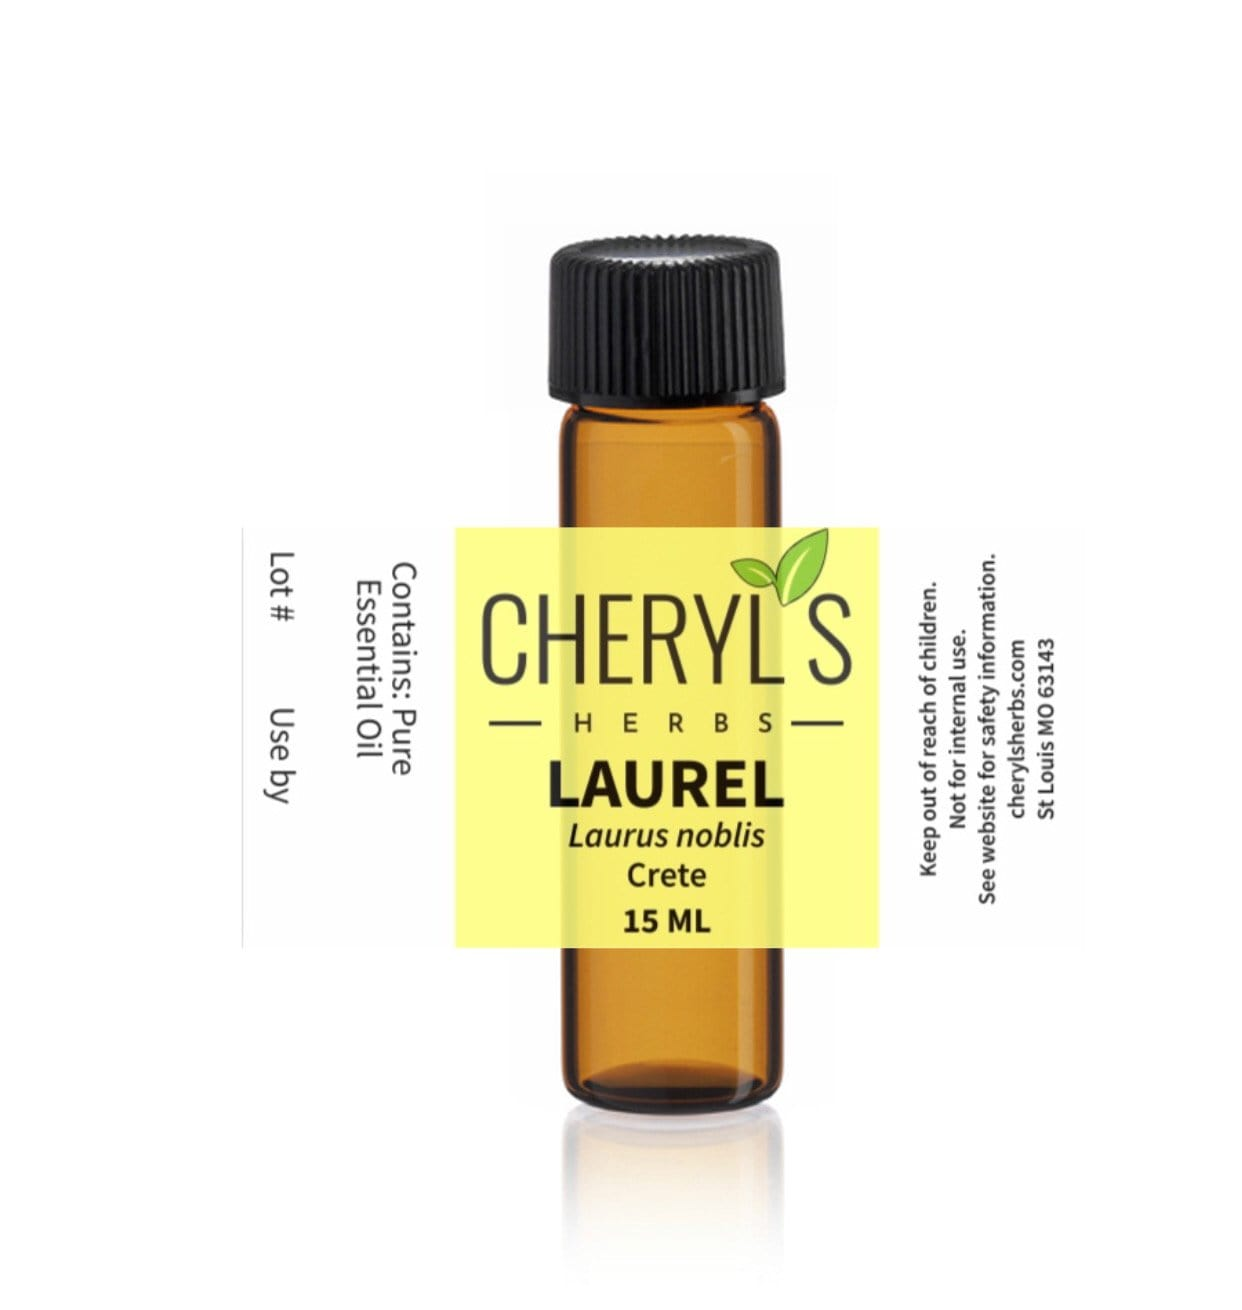 LAUREL BAY LAUREL ESSENTIAL OIL * - Cheryls Herbs